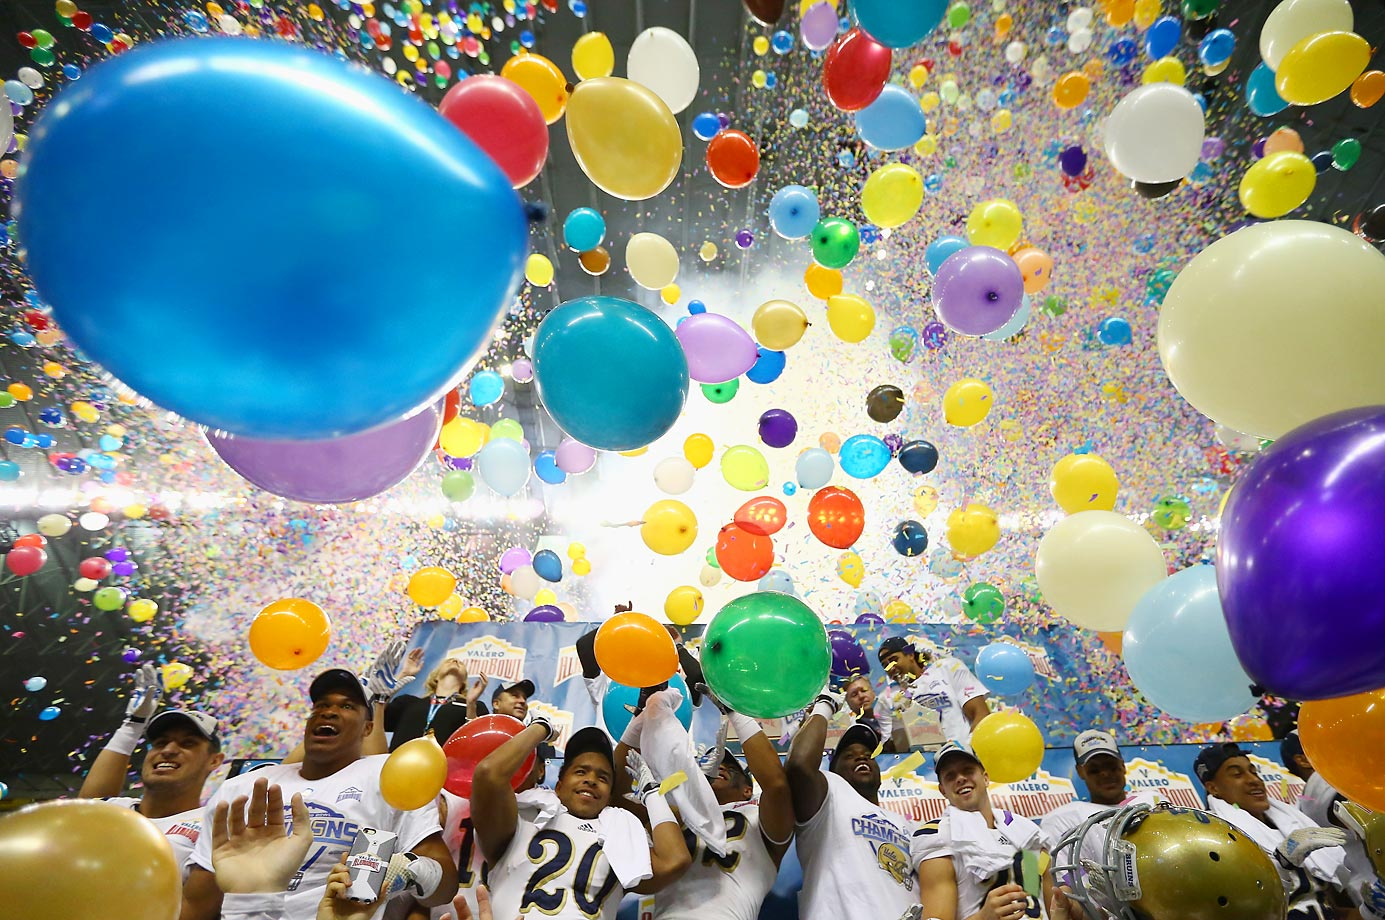 The UCLA Bruins celebrate their 40-35 win against the Kansas State Wildcats during the Valero Alamo Bowl in San Antonio.